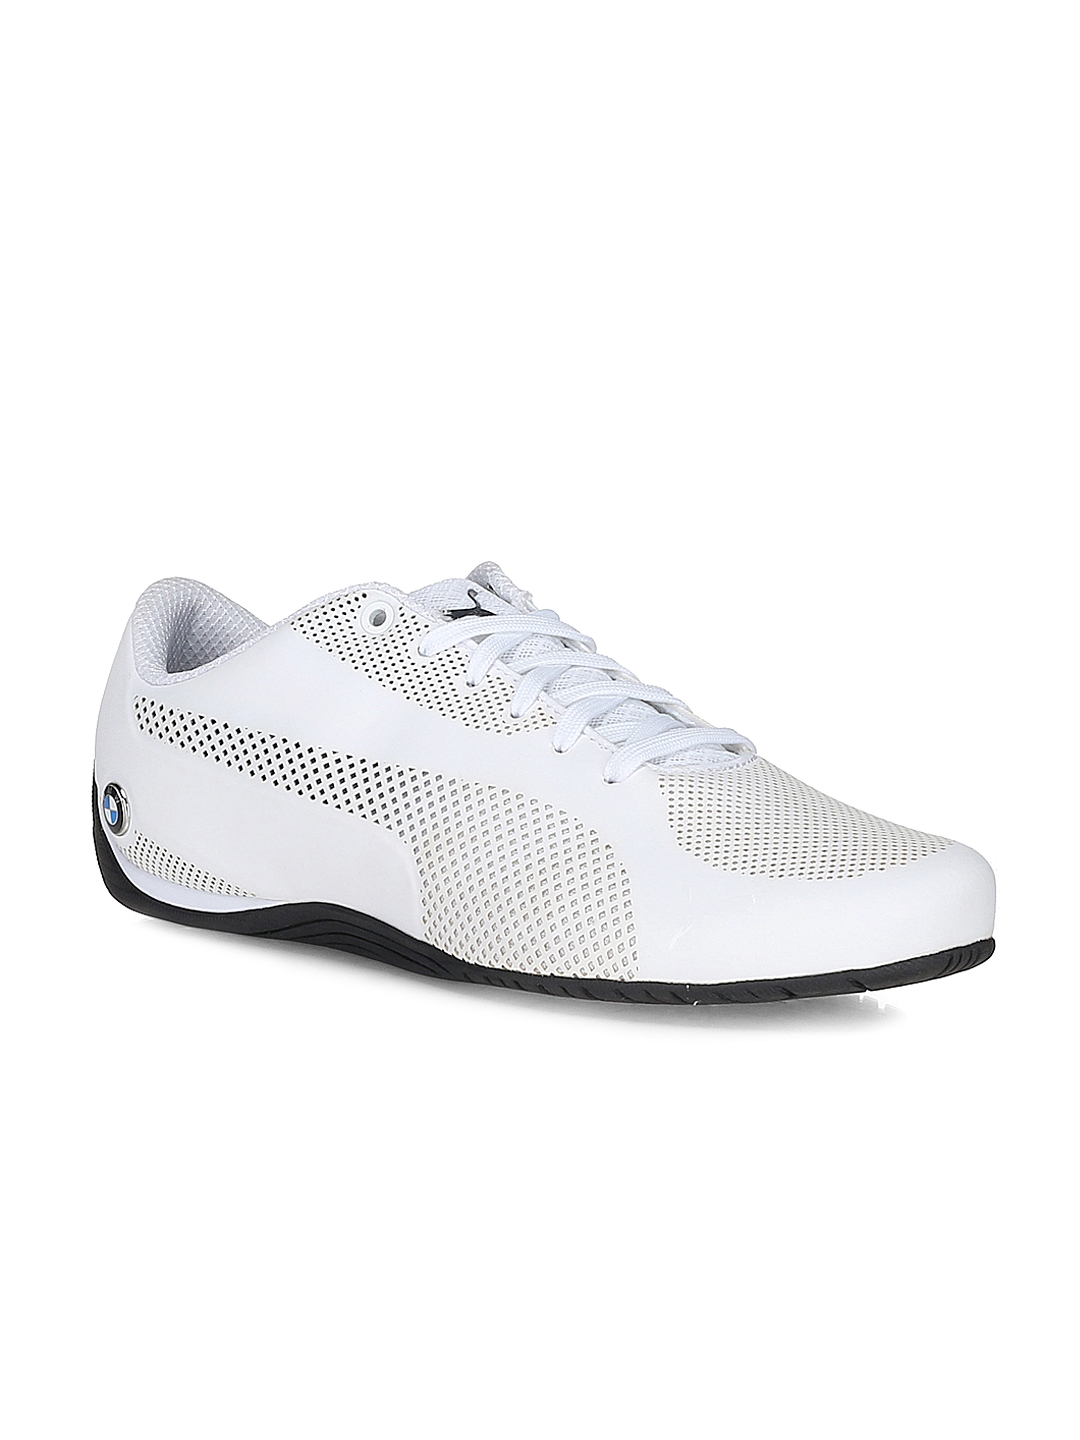 Buy Puma Unisex White BMW MS Drift Cat 5 Ultra Solid Sneakers ... 5e274dad8